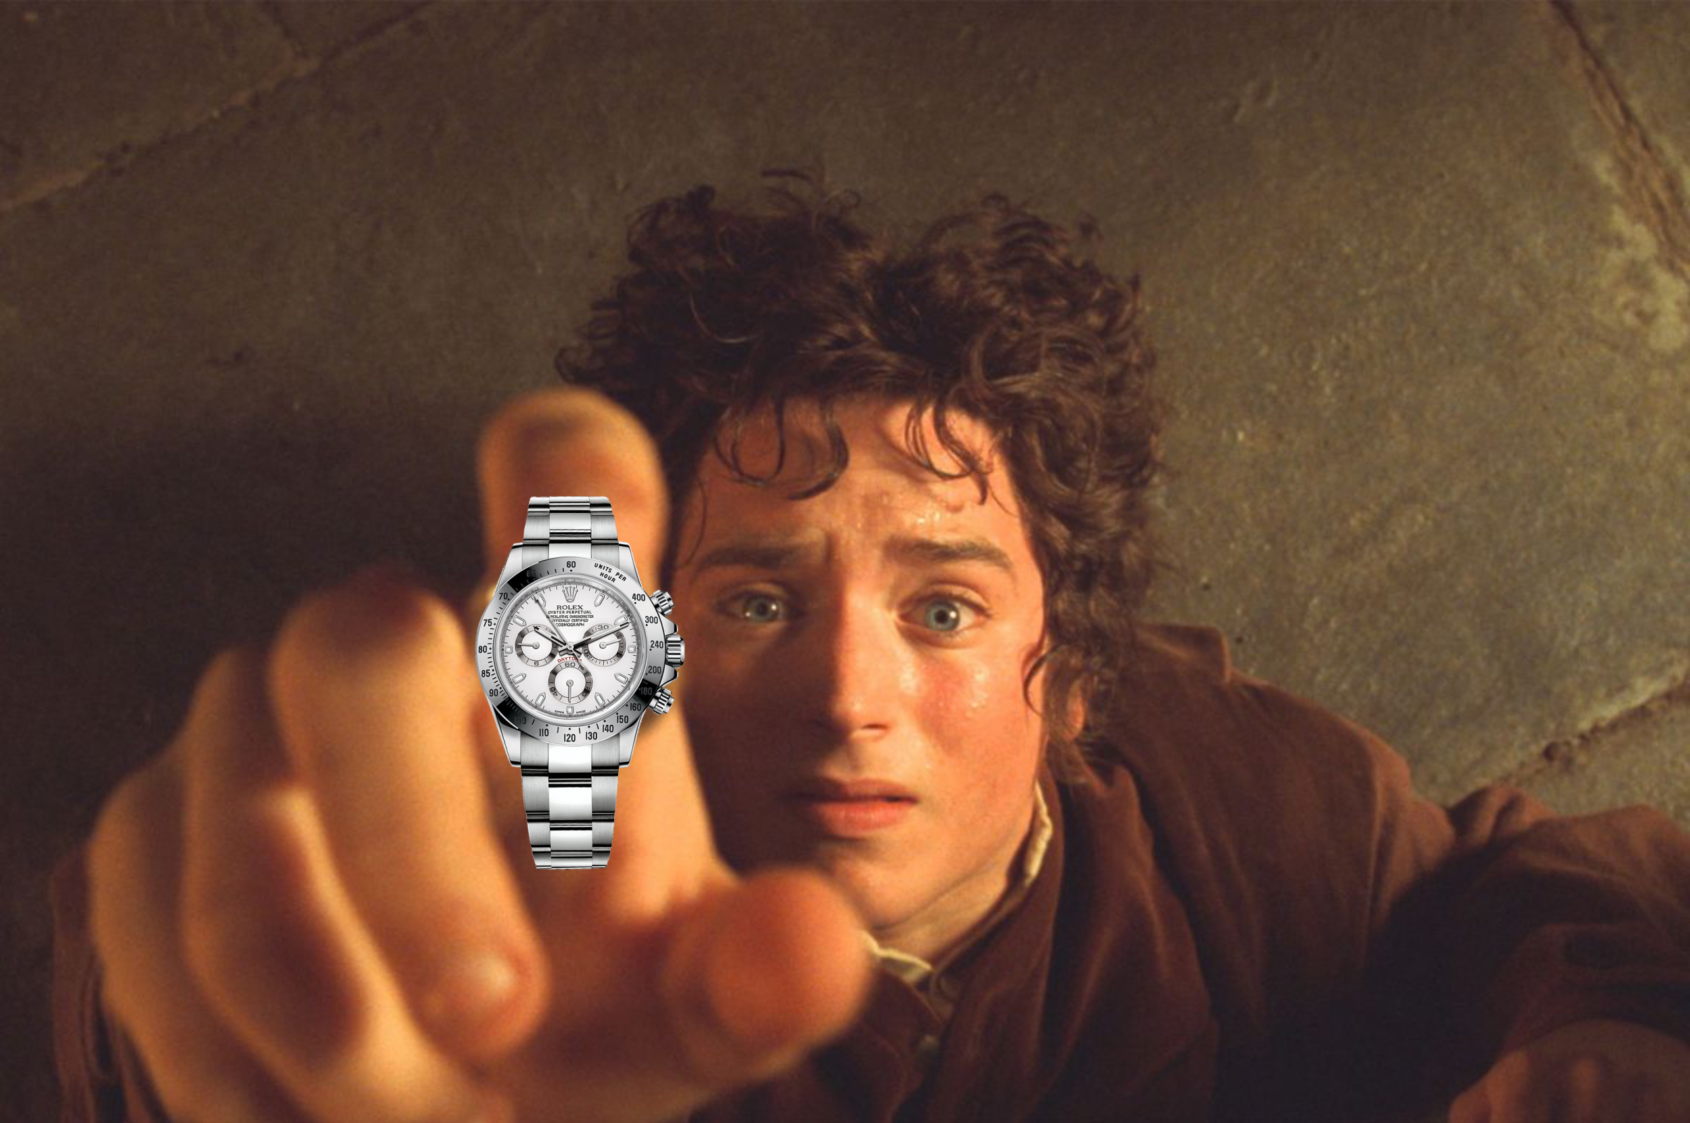 The watch that got away… Hear our sob stories and share yours at The Breakfast Club #4 on Clubhouse